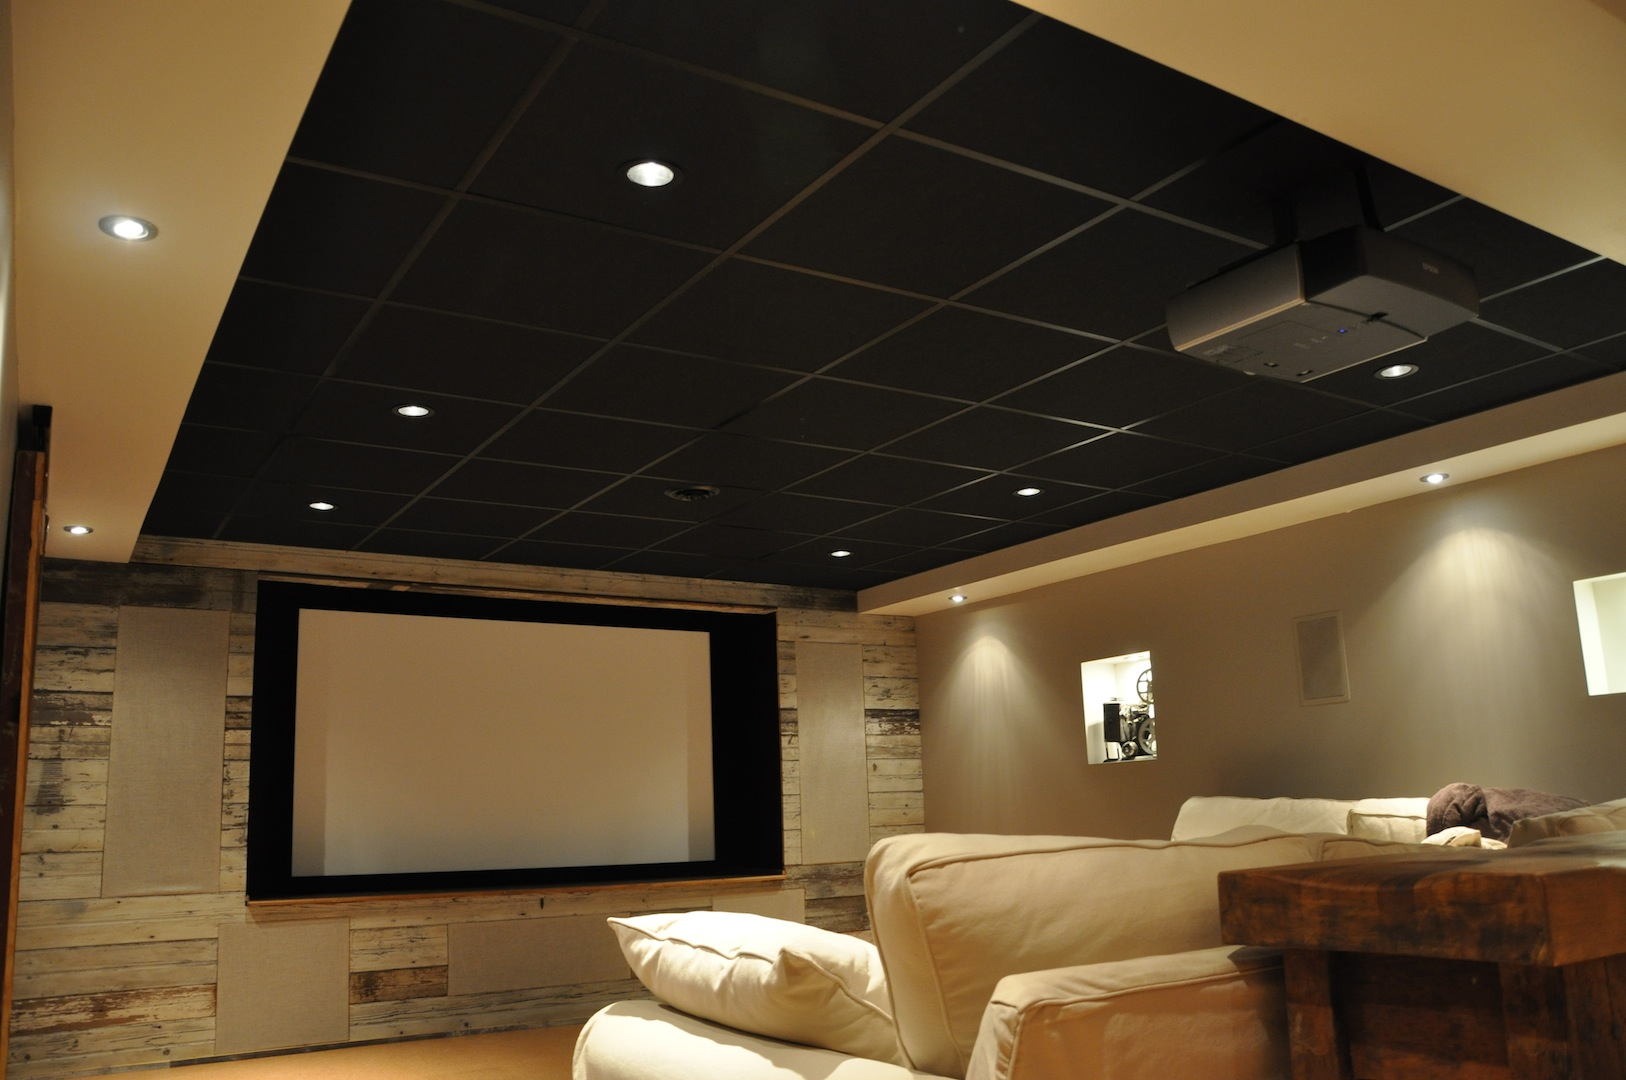 blackceilings/MARCFISHER4.JPG